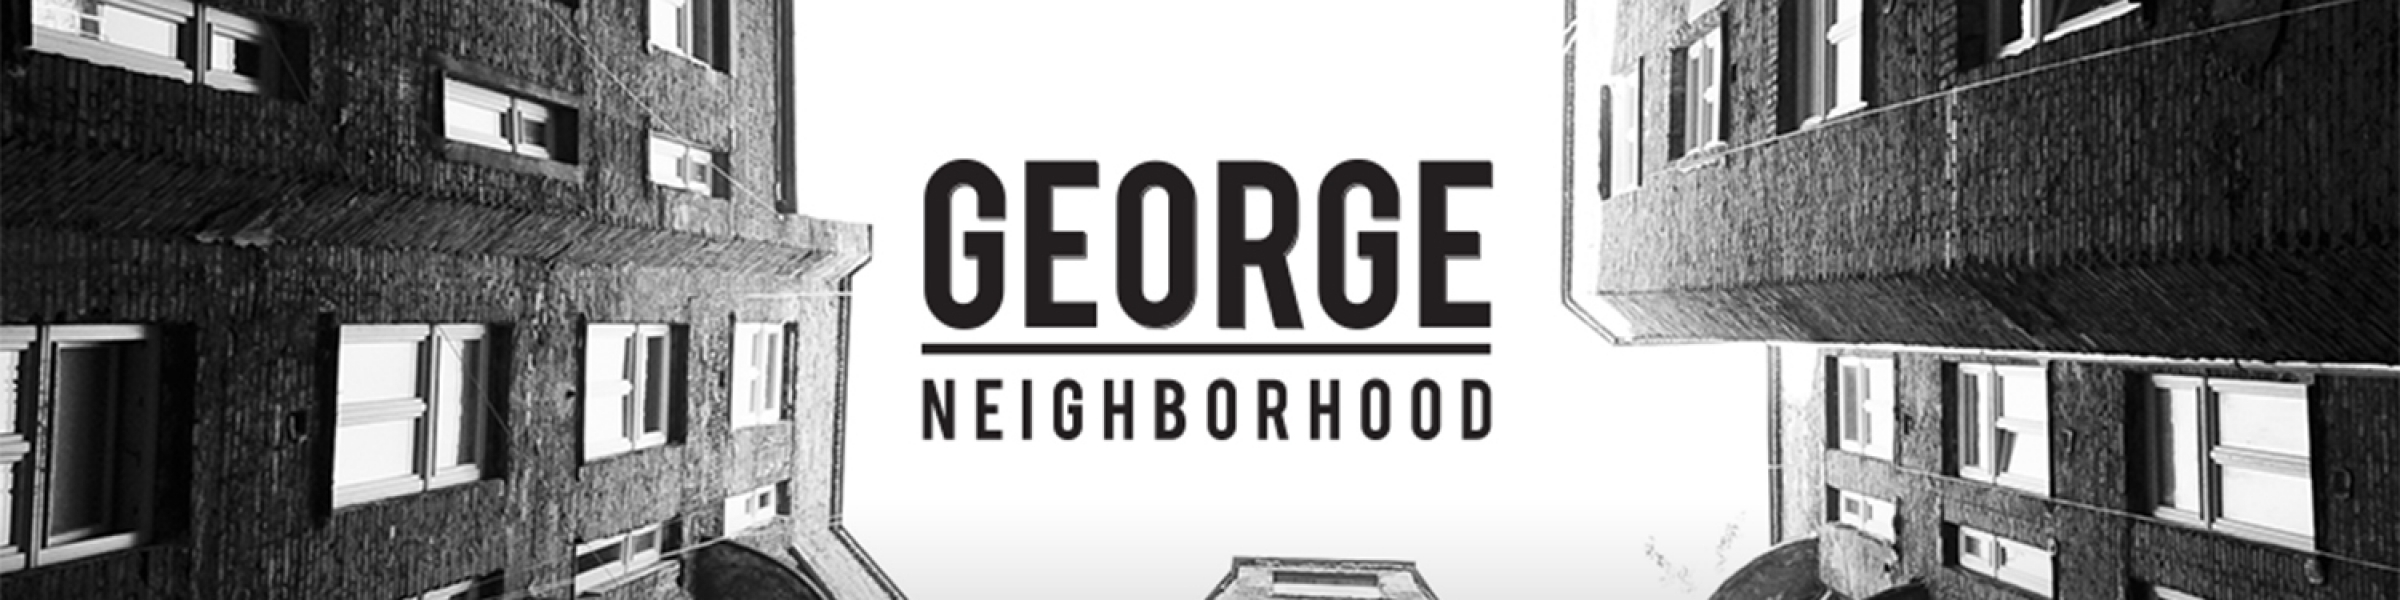 George Neighborhood